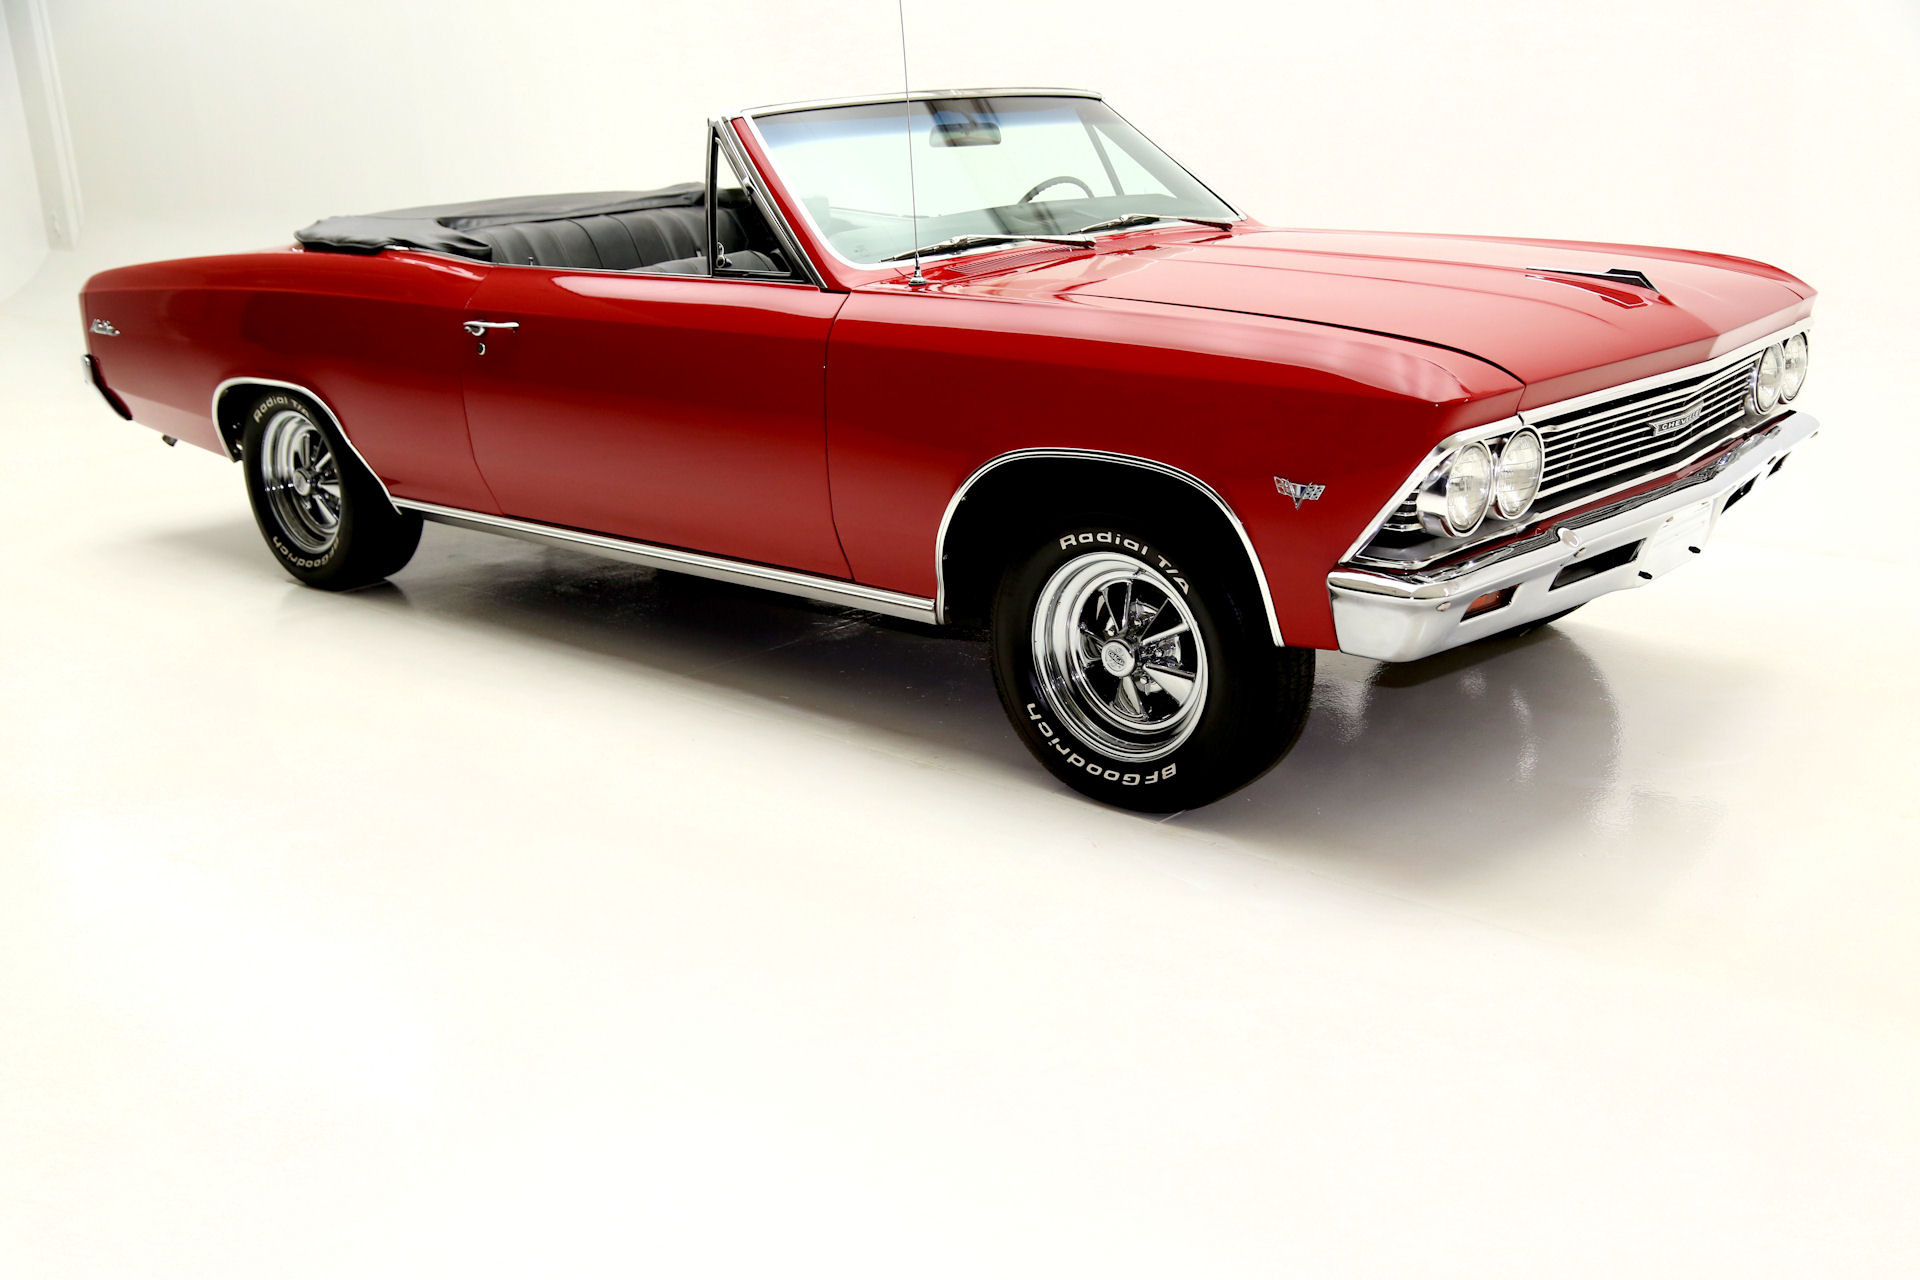 1966 chevrolet chevelle convertible red 4 speed. Black Bedroom Furniture Sets. Home Design Ideas